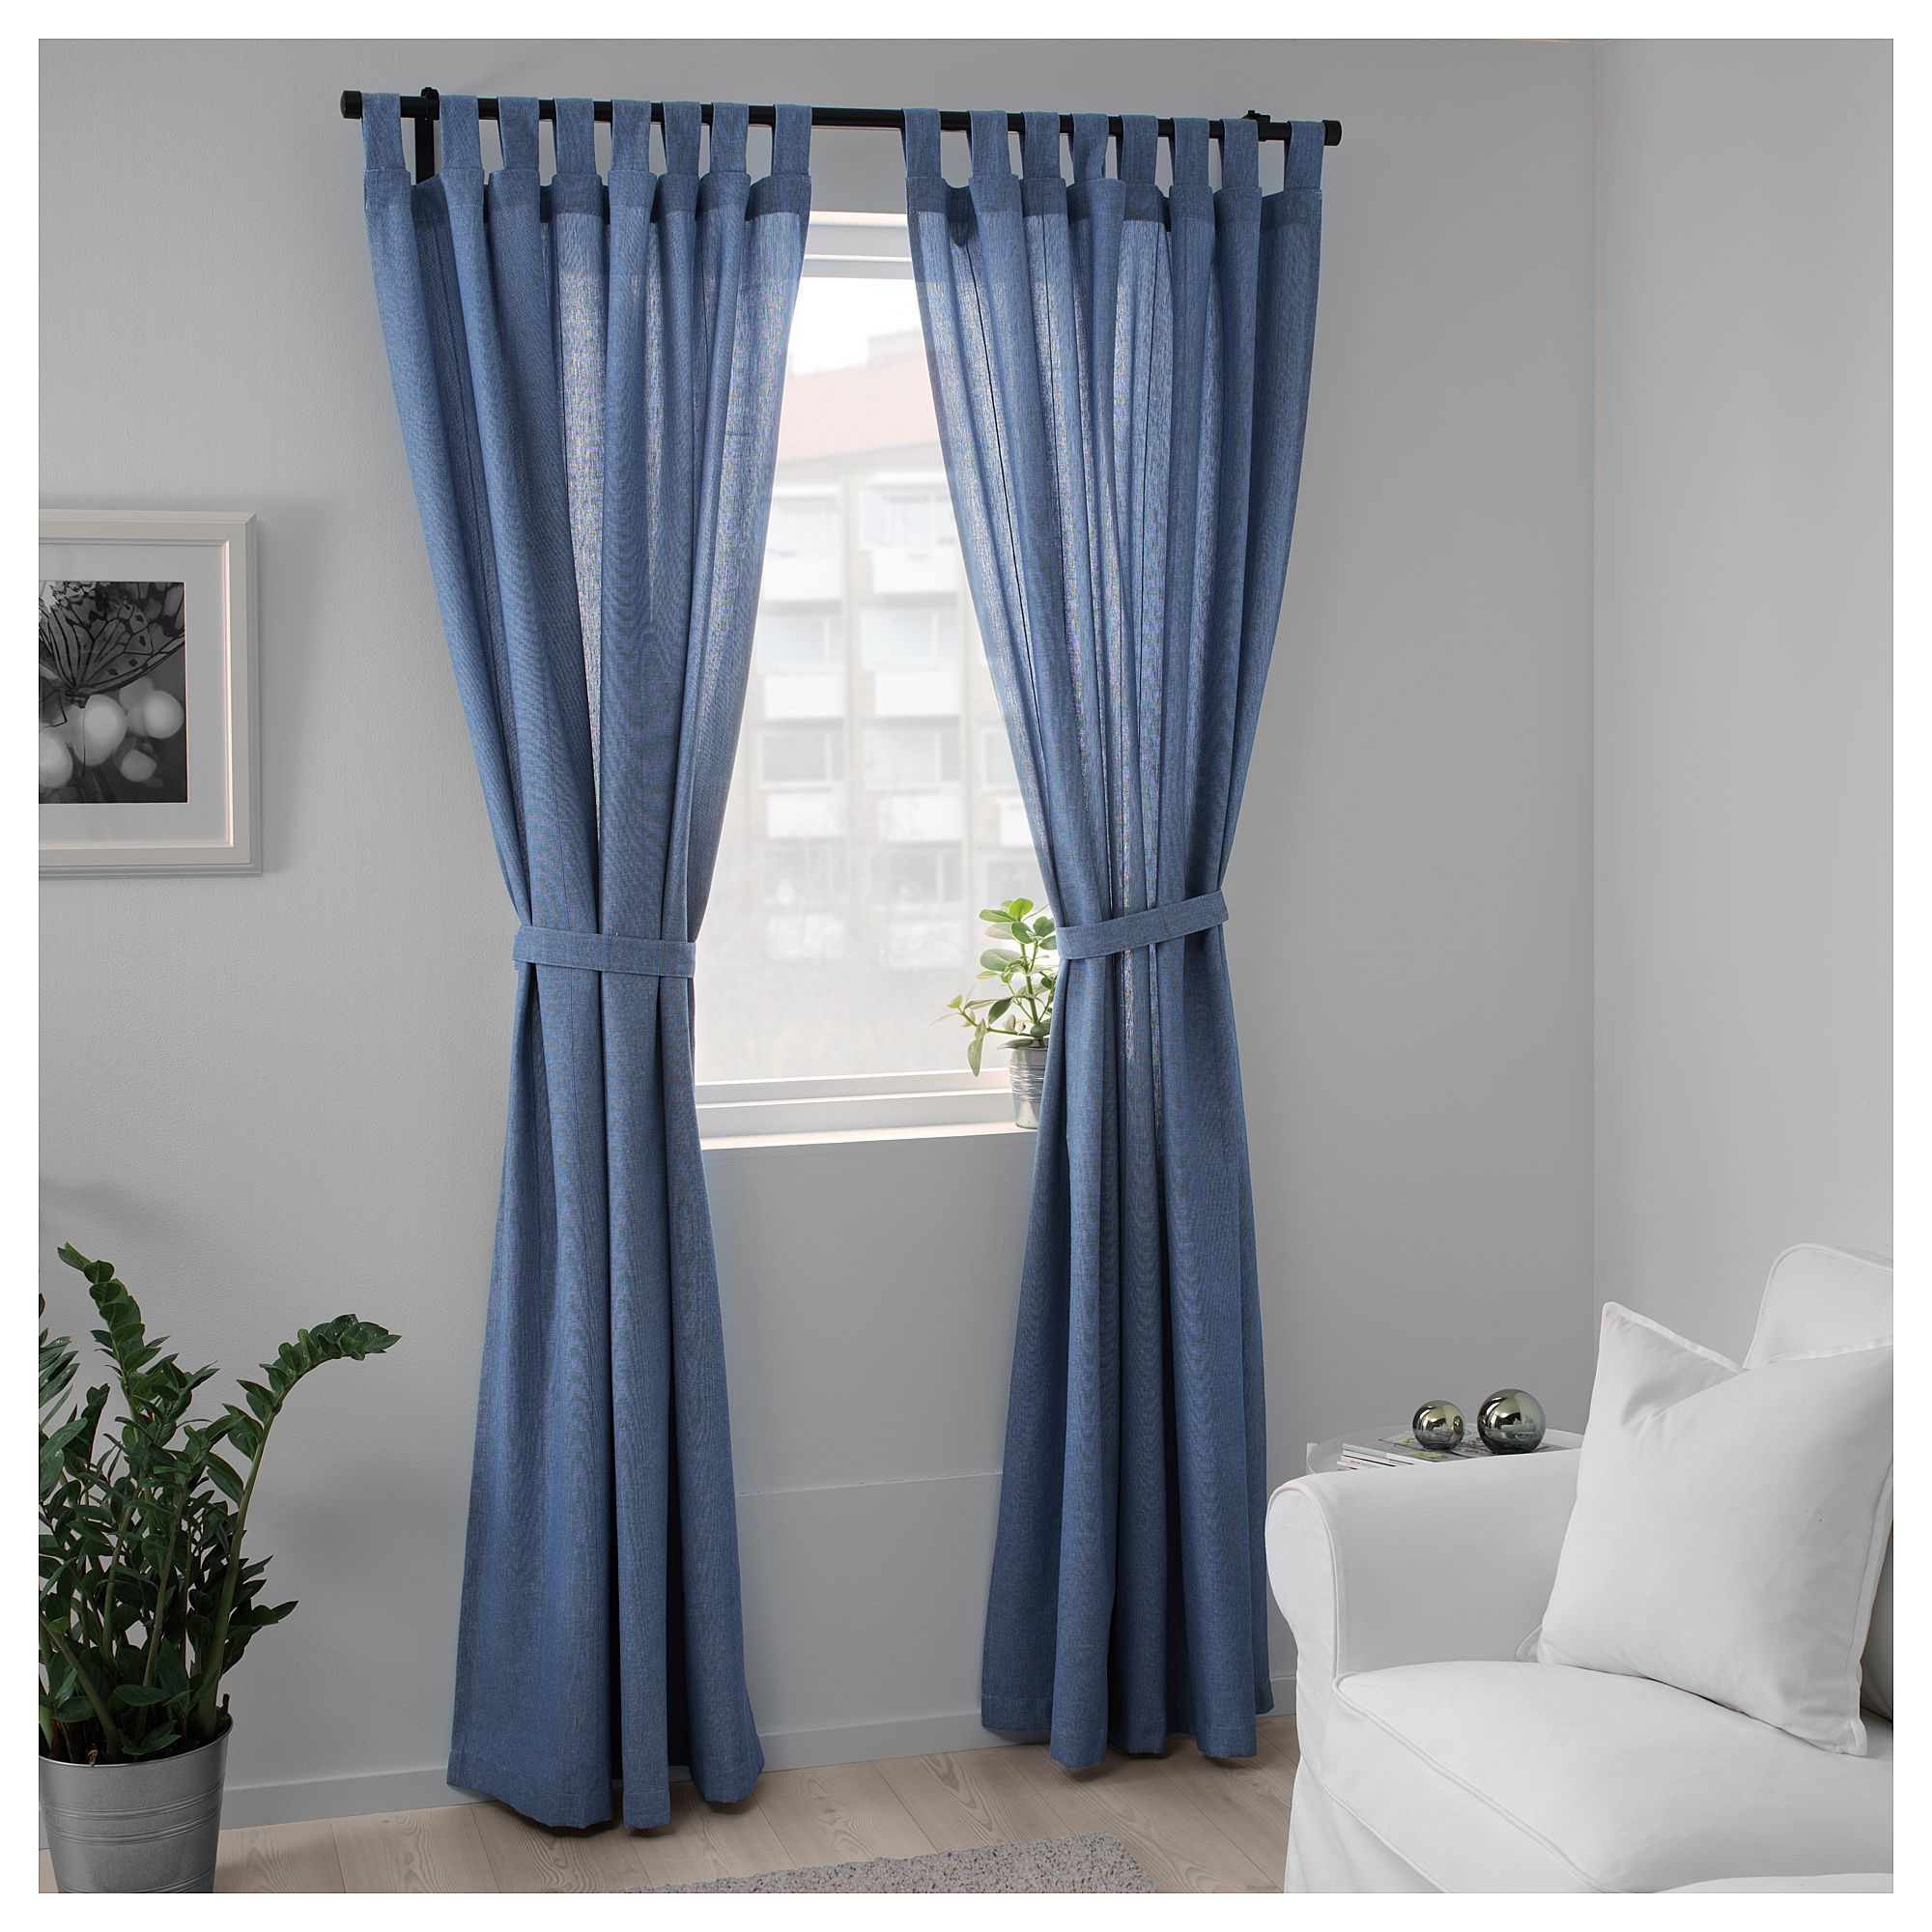 Furniture Home Furnishings Find Your Inspiration Ikea Lenda Vorhänge Ikea Curtains - Ikea Vorhang Lenda Grau